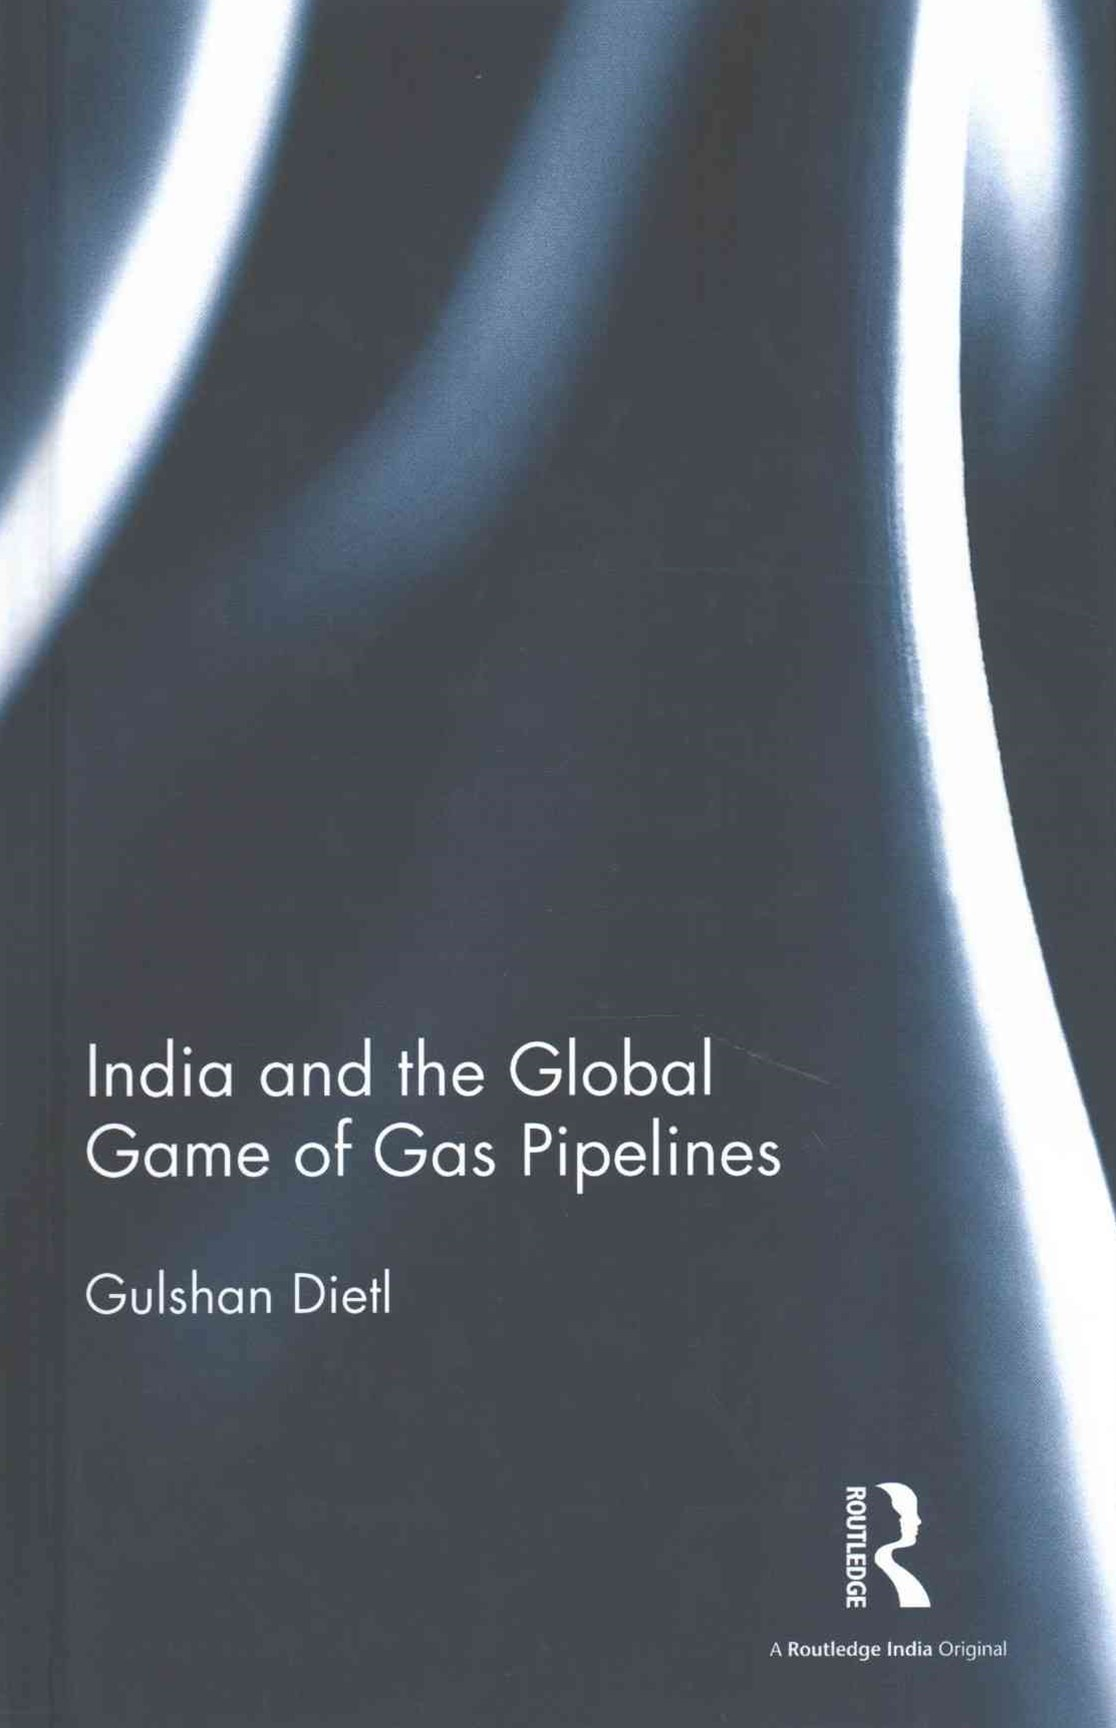 India and the Global Game of Gas Pipelines